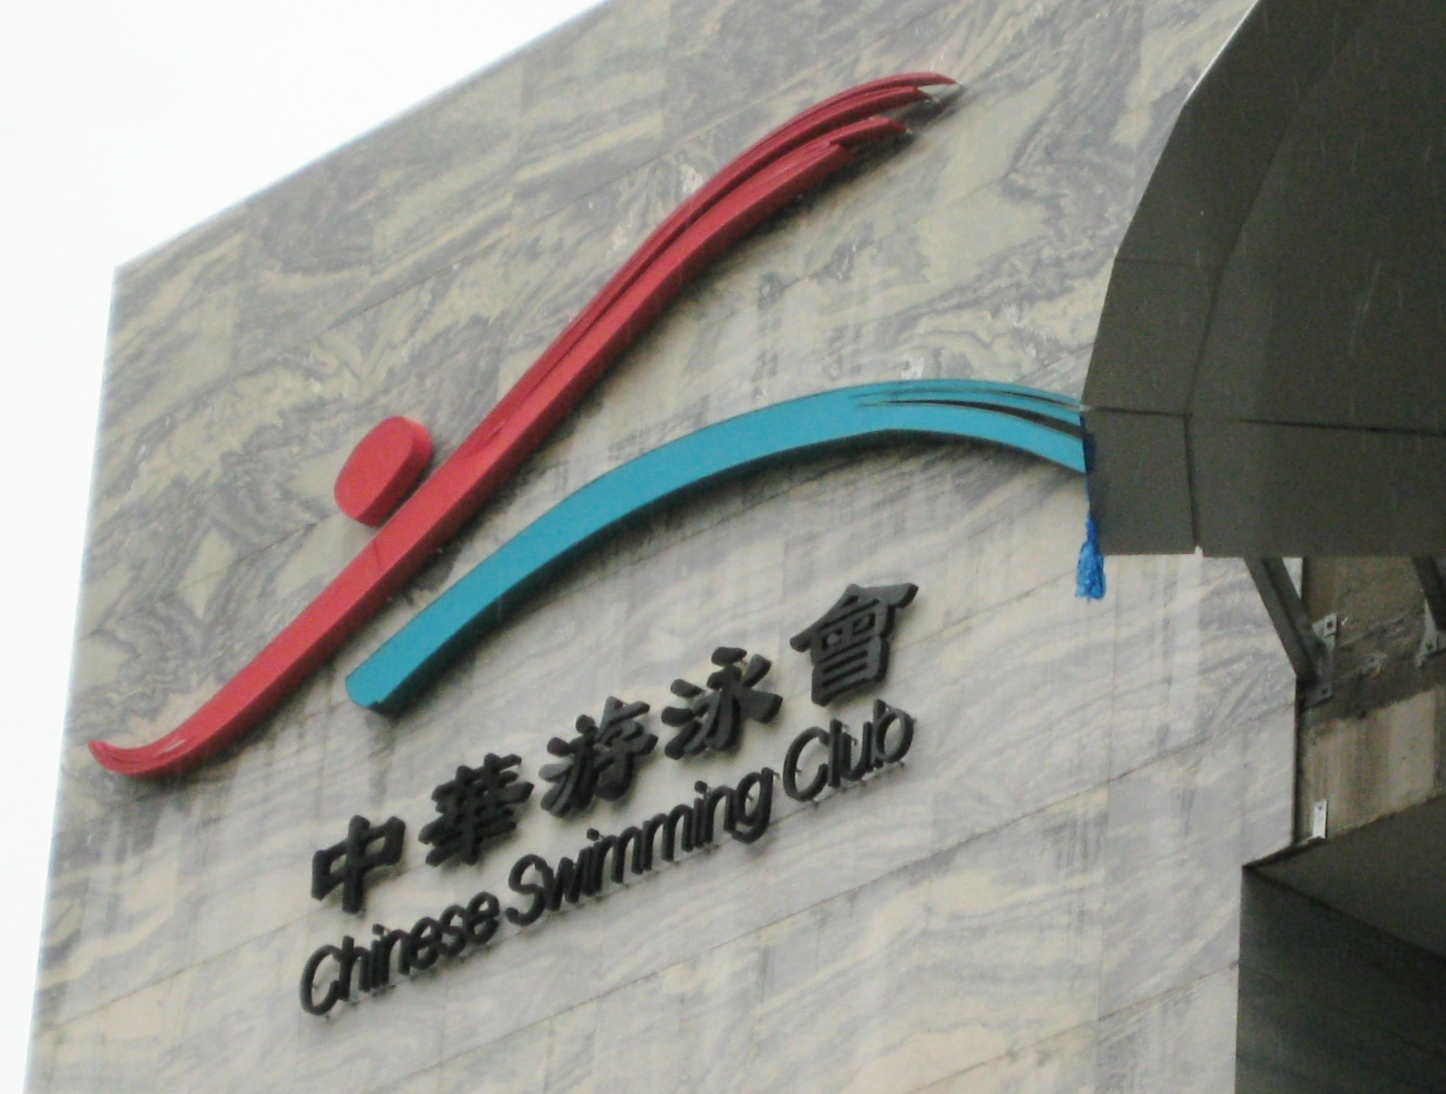 Chinese Swim Club